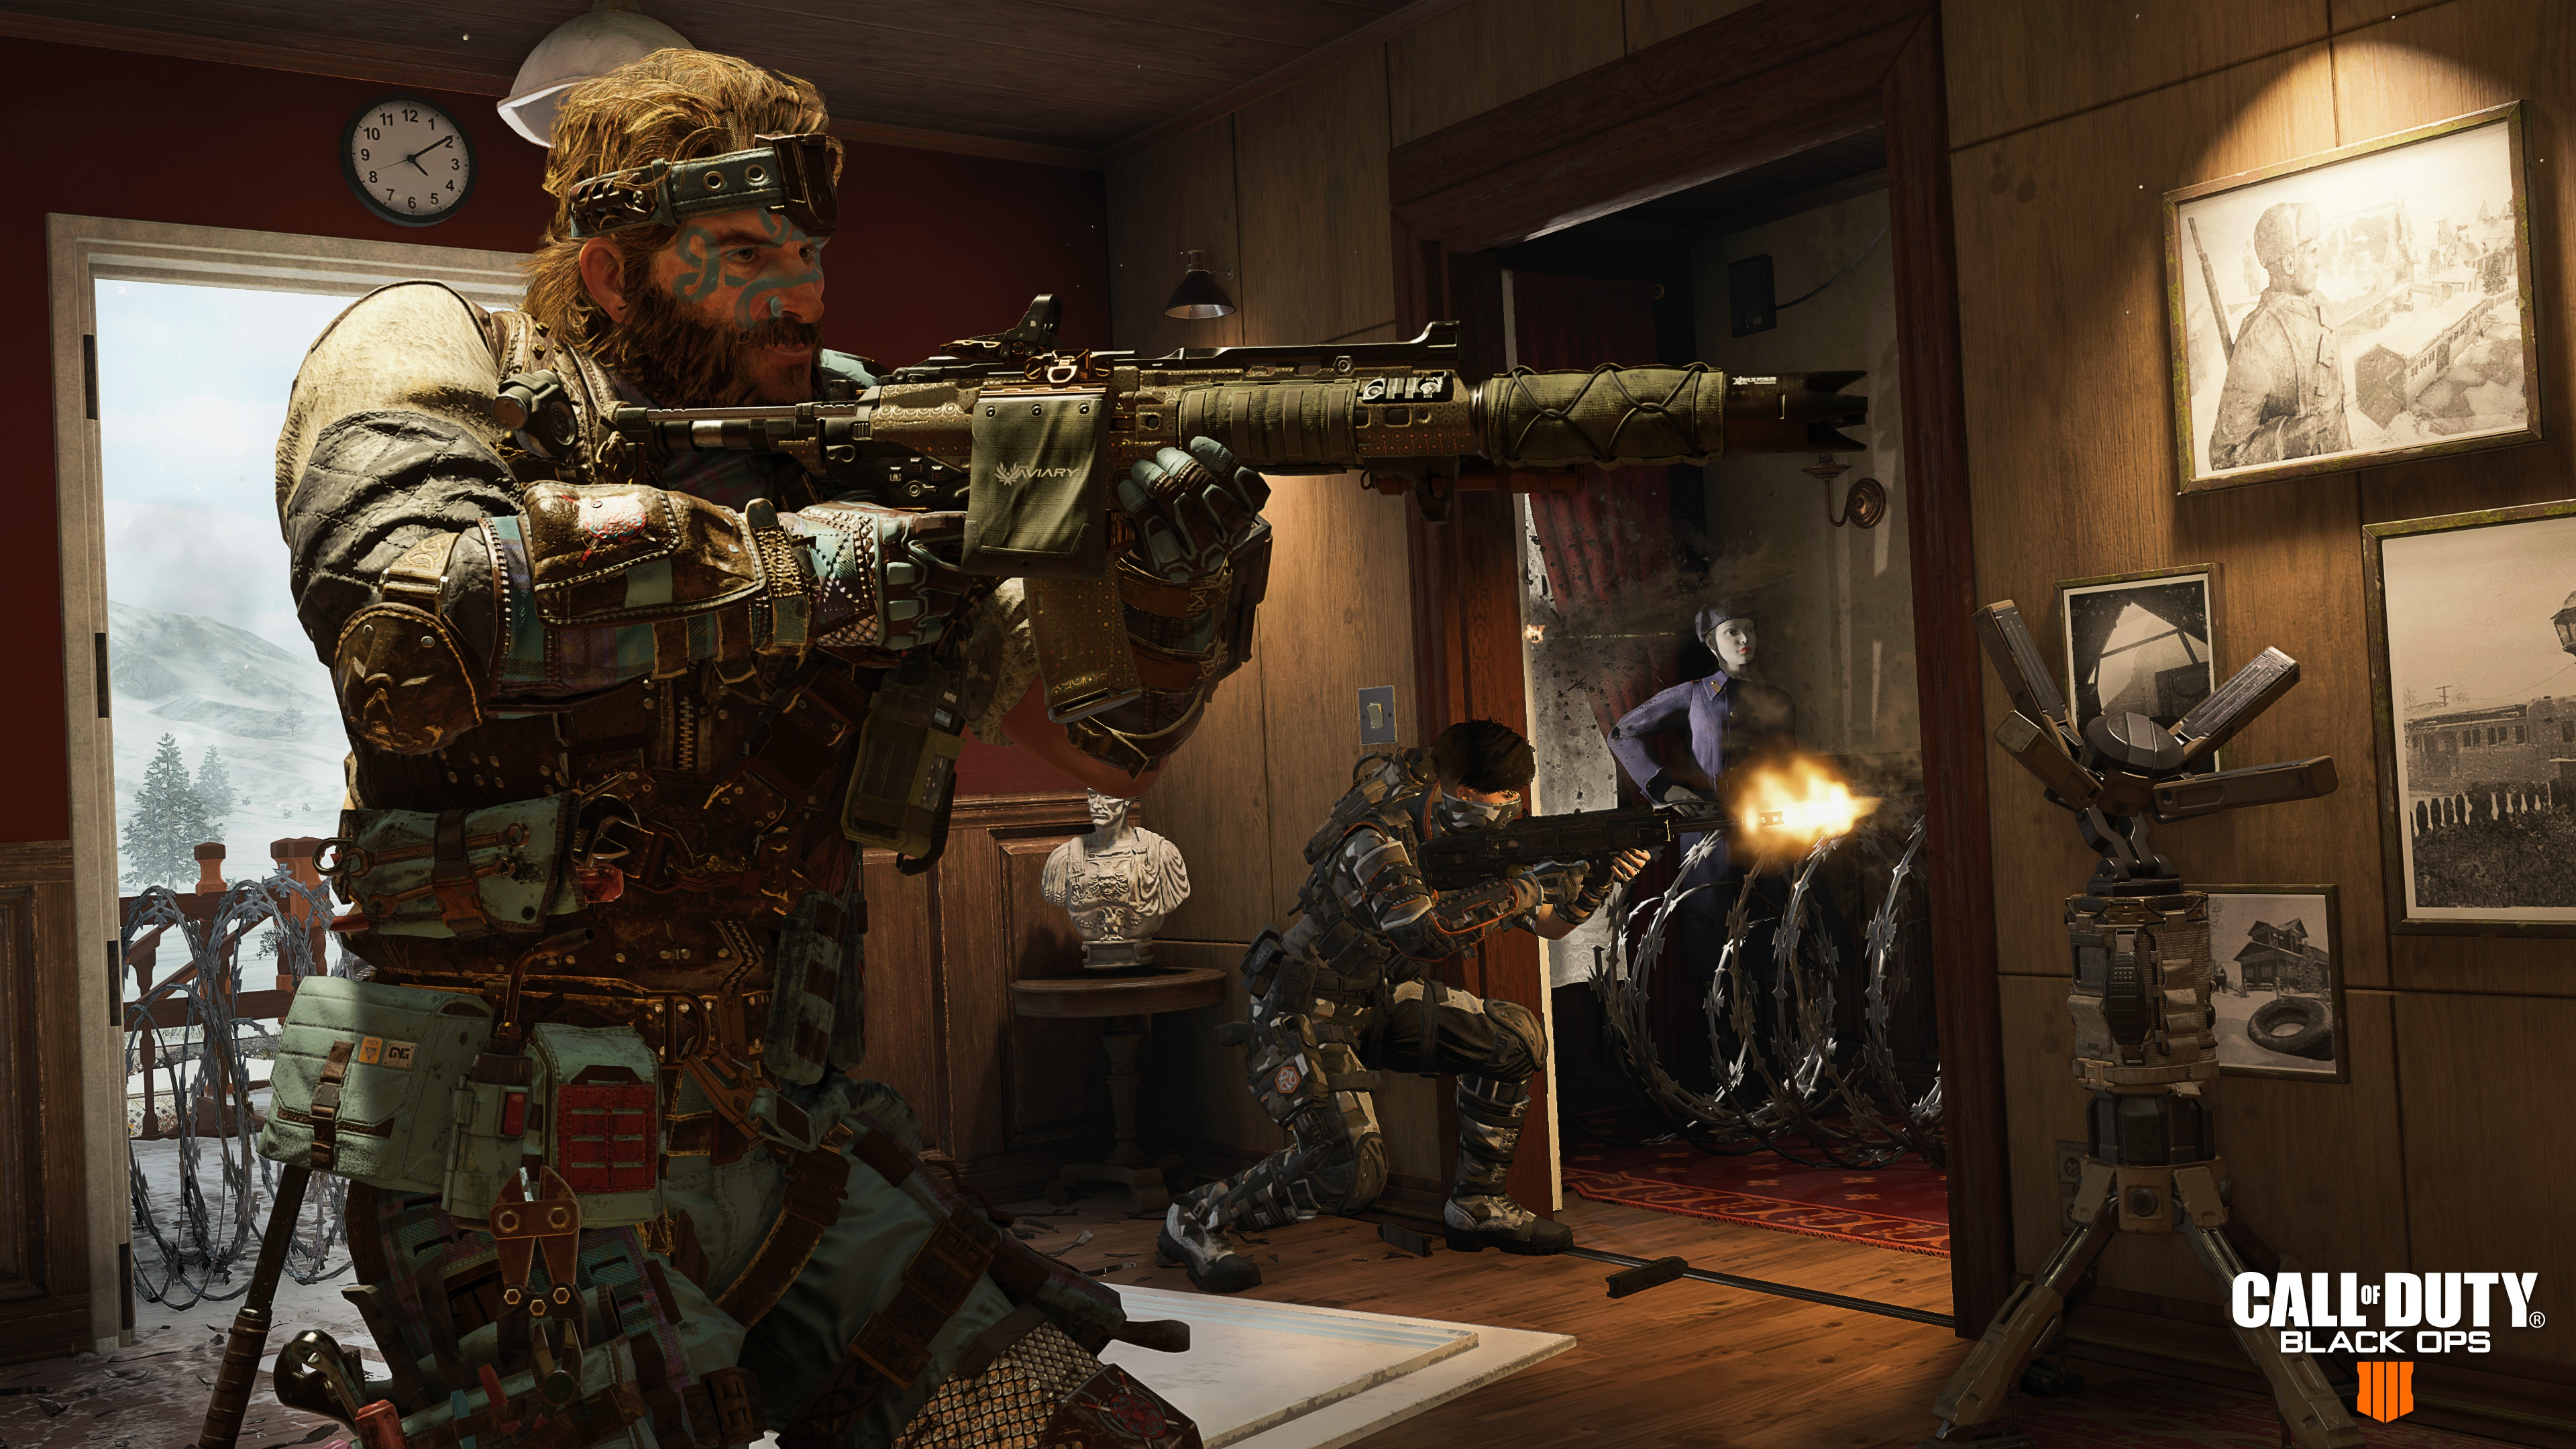 Nuketown Call Of Duty Black Ops 4 Hd Games 4k Wallpapers Images